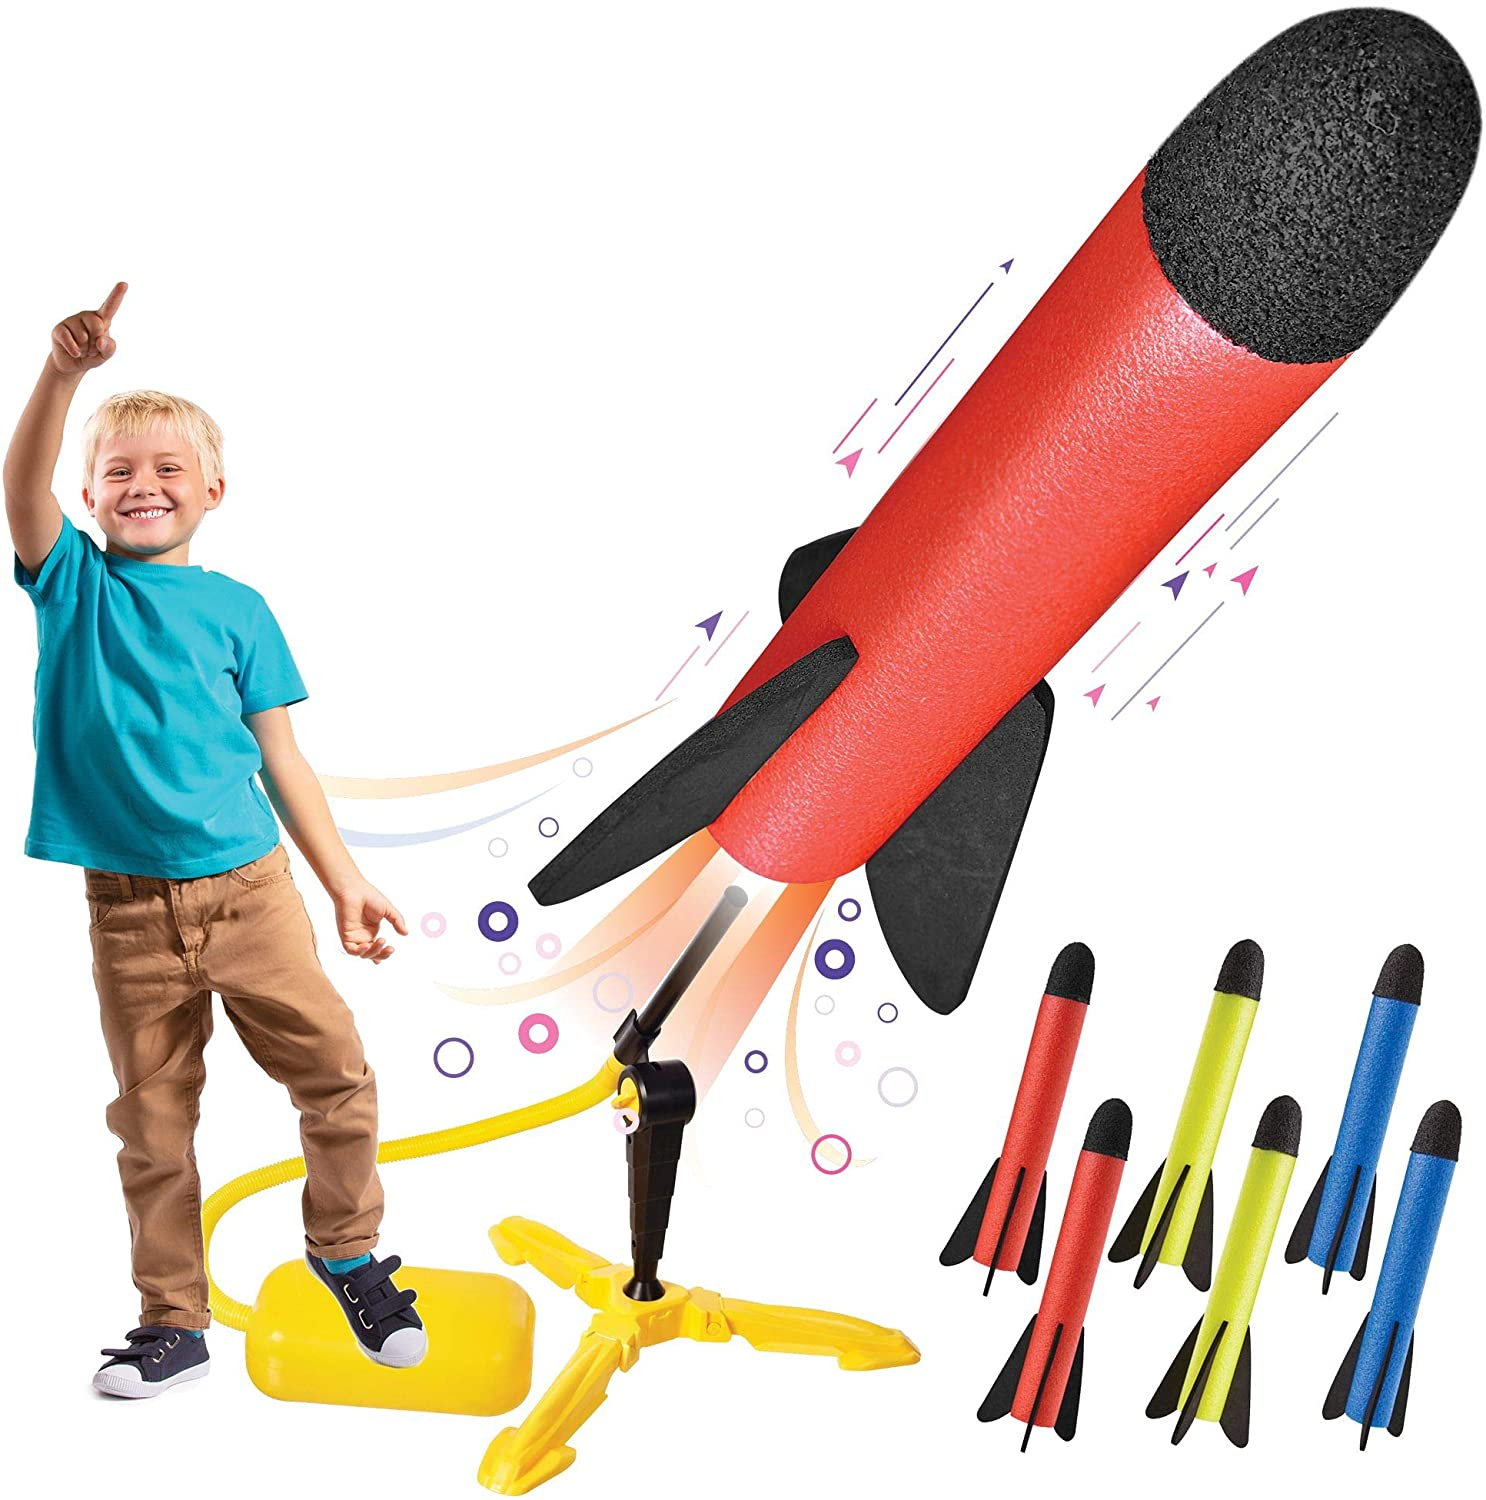 gifts-for-9-year-old-boys-rocket-launcher